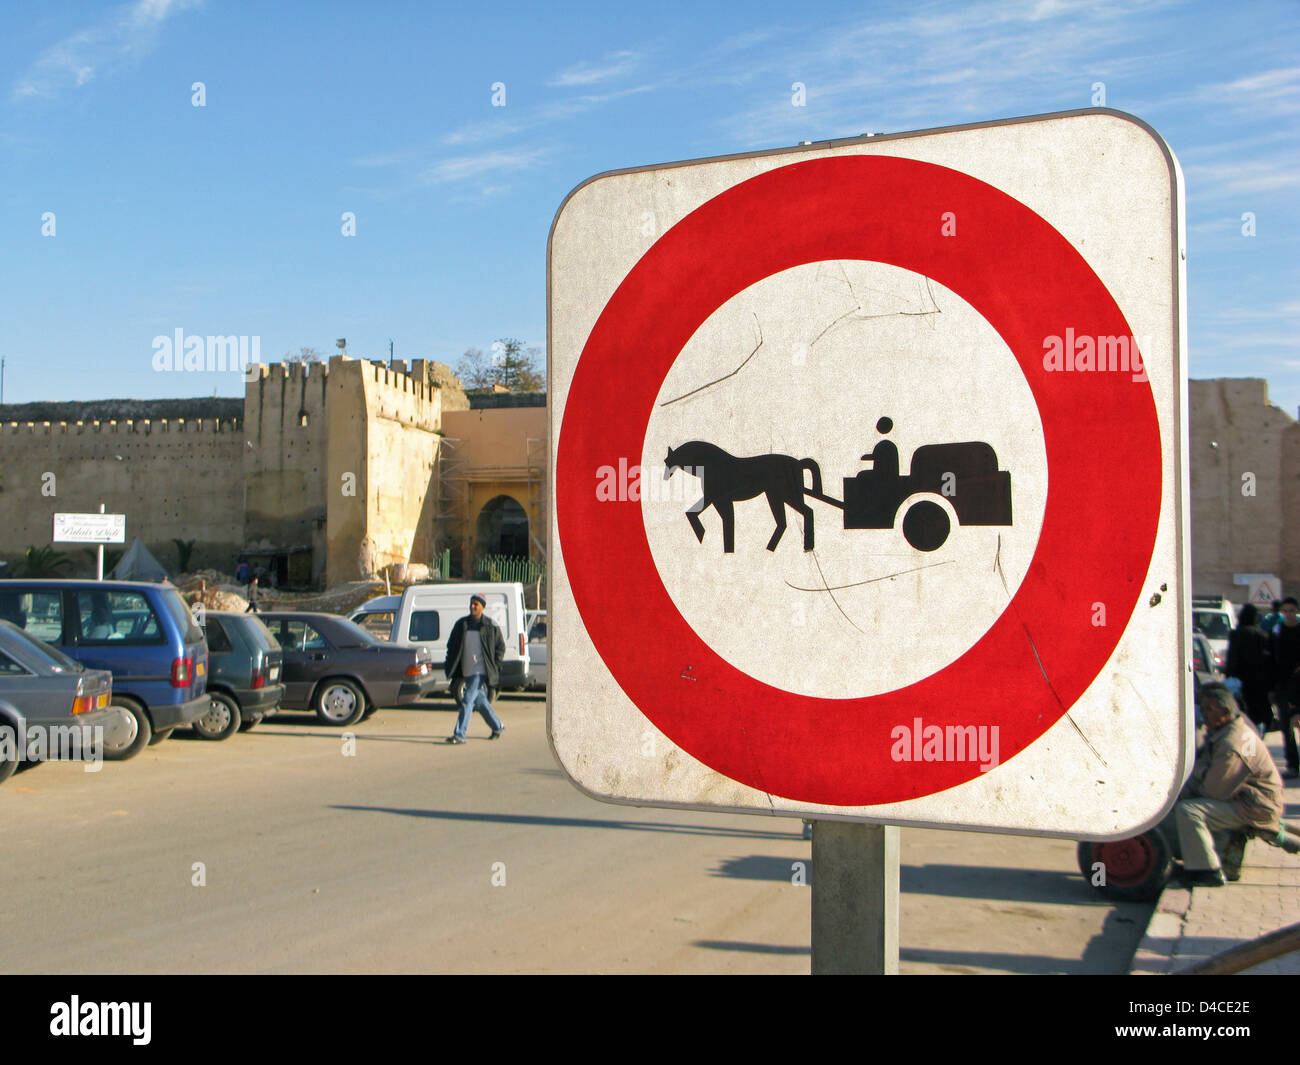 A traffic sign prohibits the passage of horse carts in Meknes, Morocco, 14 December 2007. Photo: Lars Halbauer - Stock Image